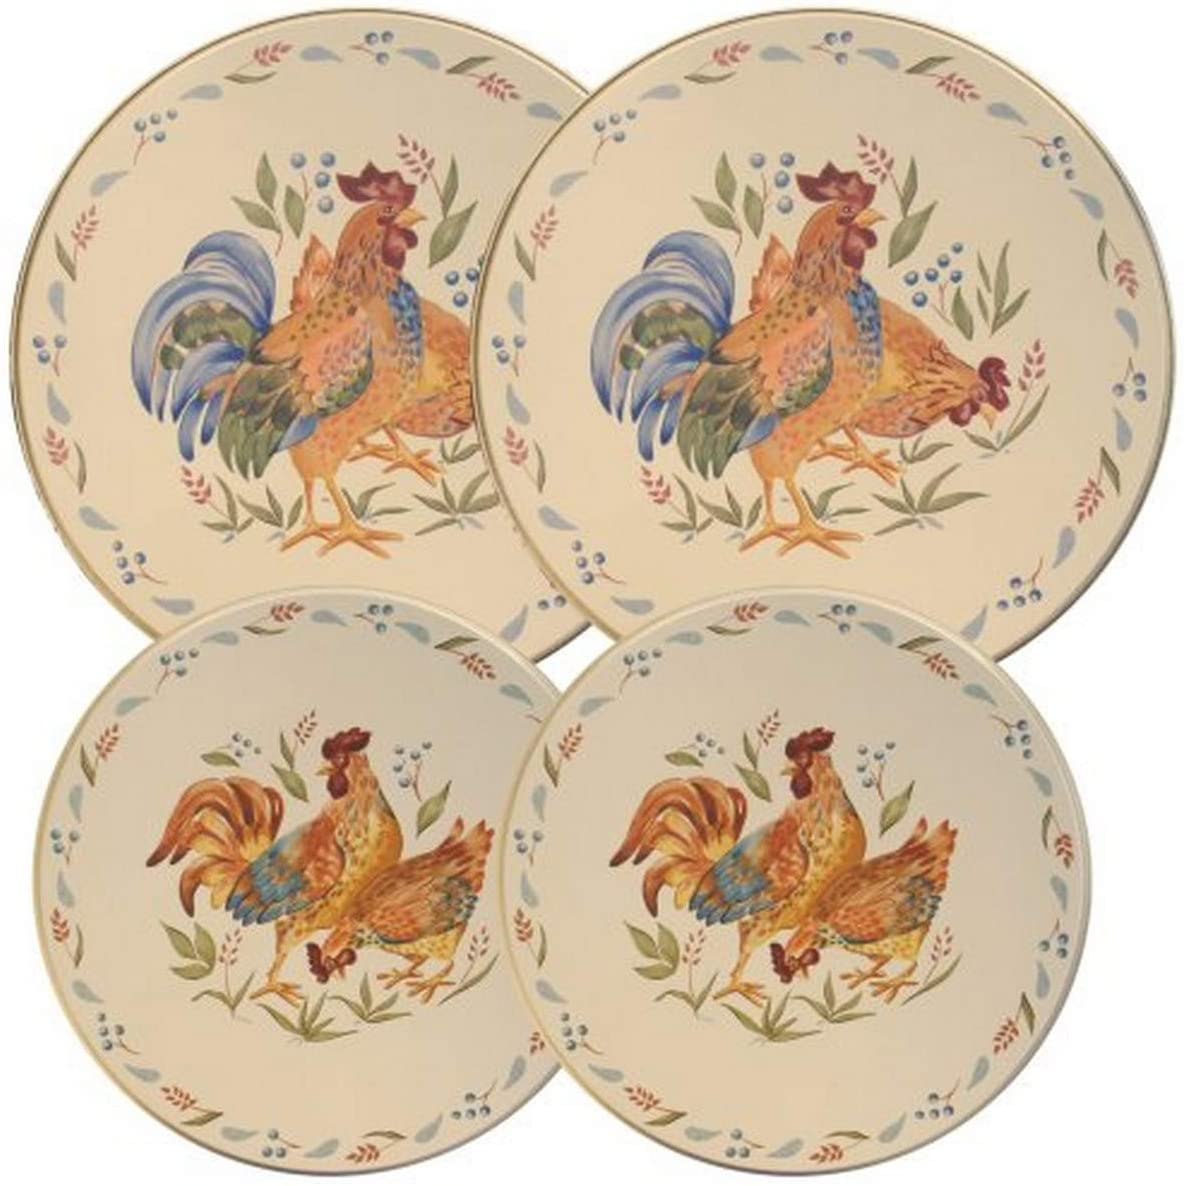 Corelle Coordinates by Reston Lloyd Electric Stovetop Burner Covers, Set of 4, Country Morning